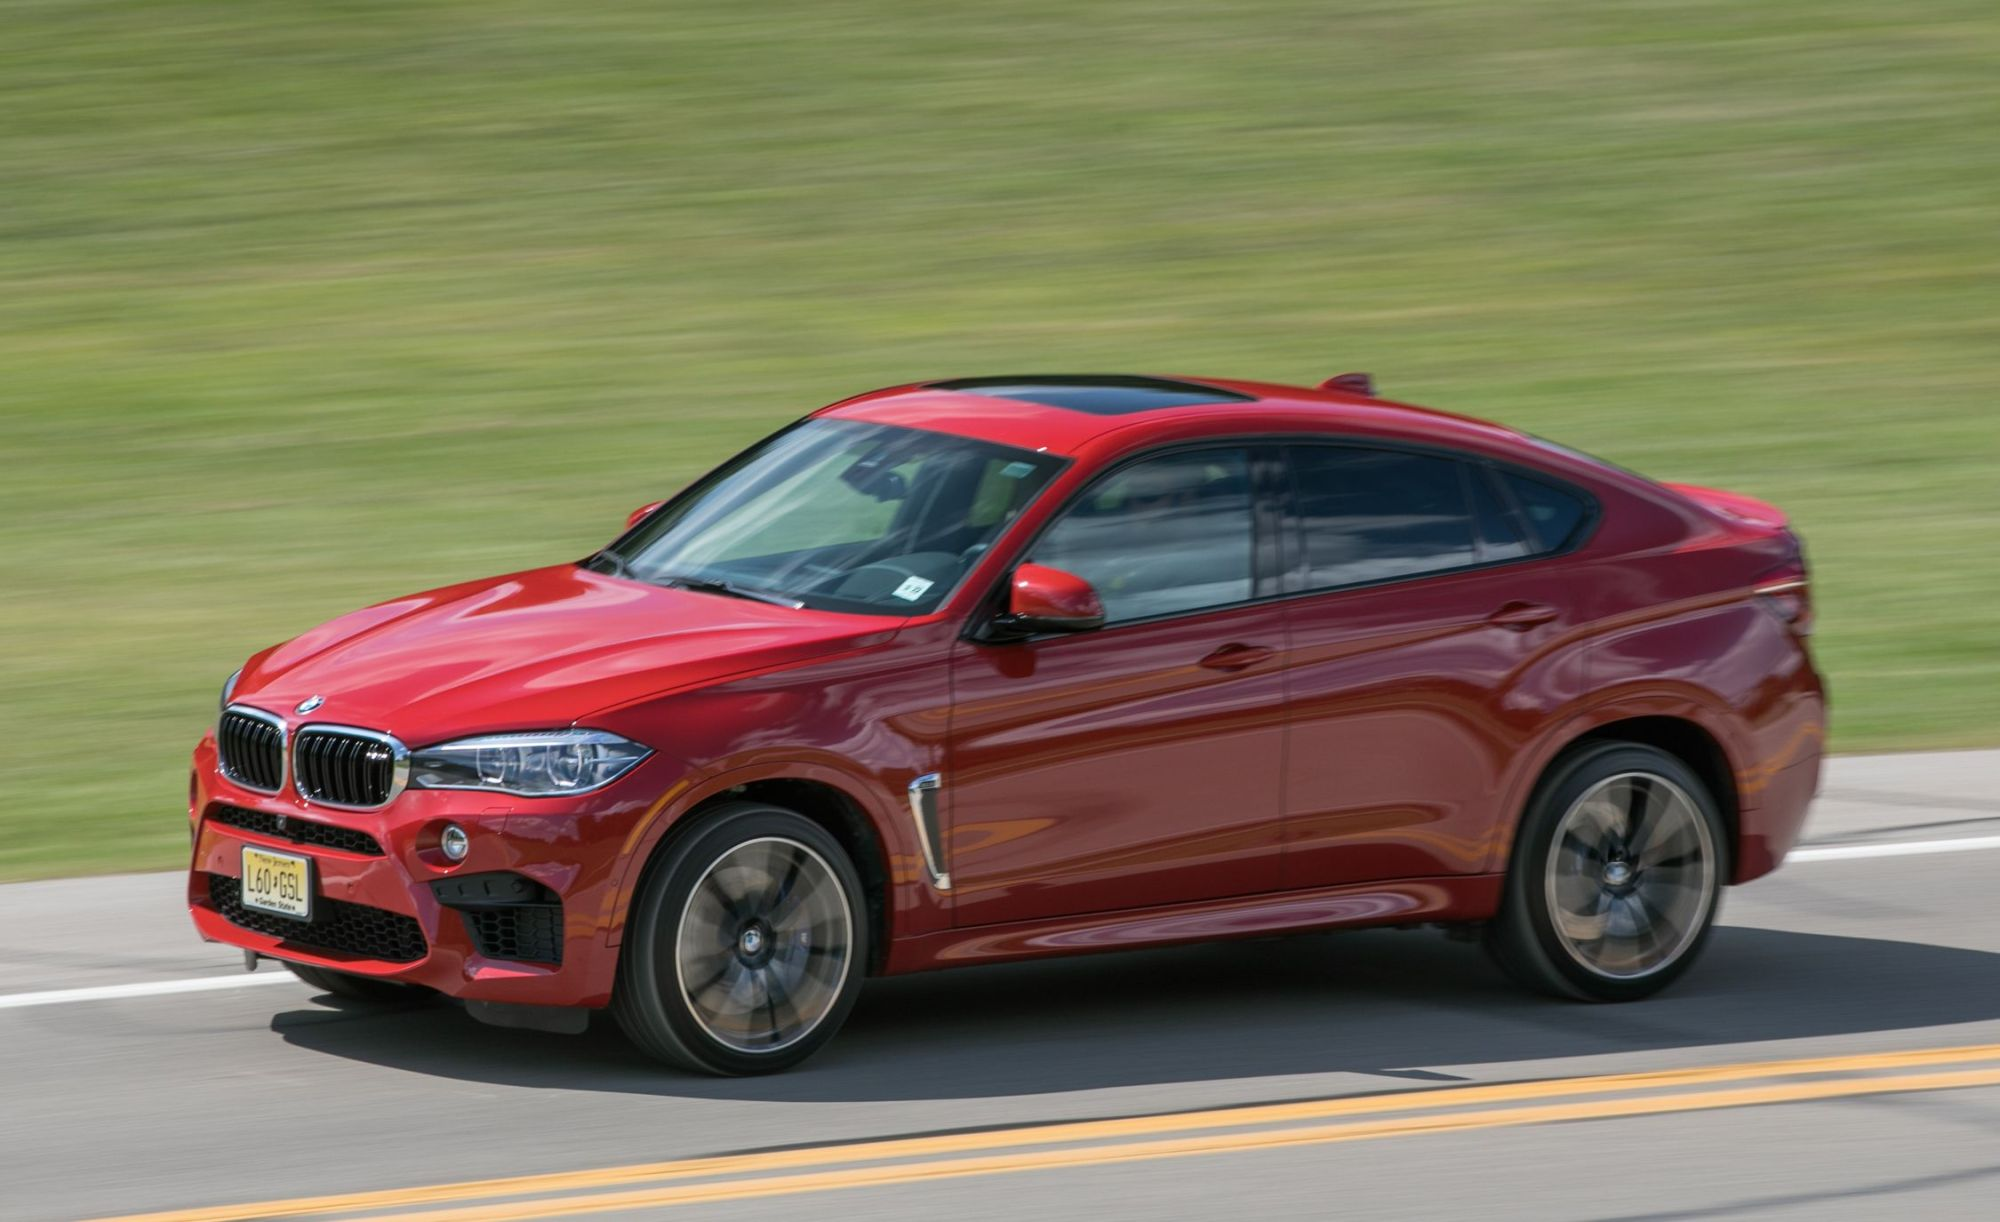 hight resolution of 2019 bmw x6 m reviews bmw x6 m price photos and specs car and driver